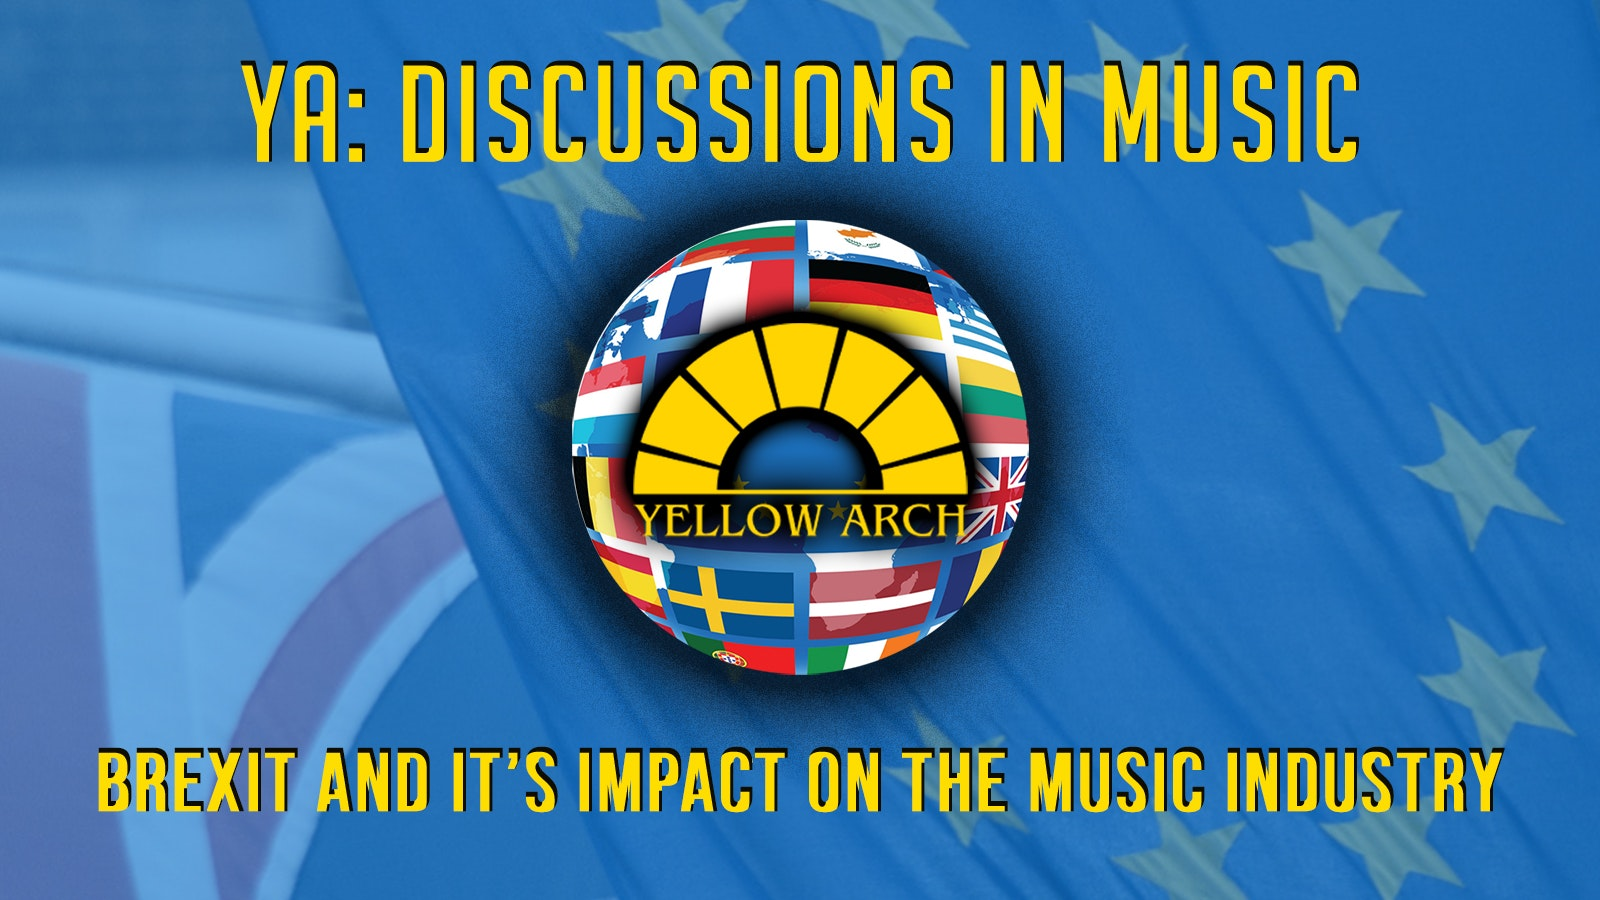 Brexit and It's Impact on the Music Industry